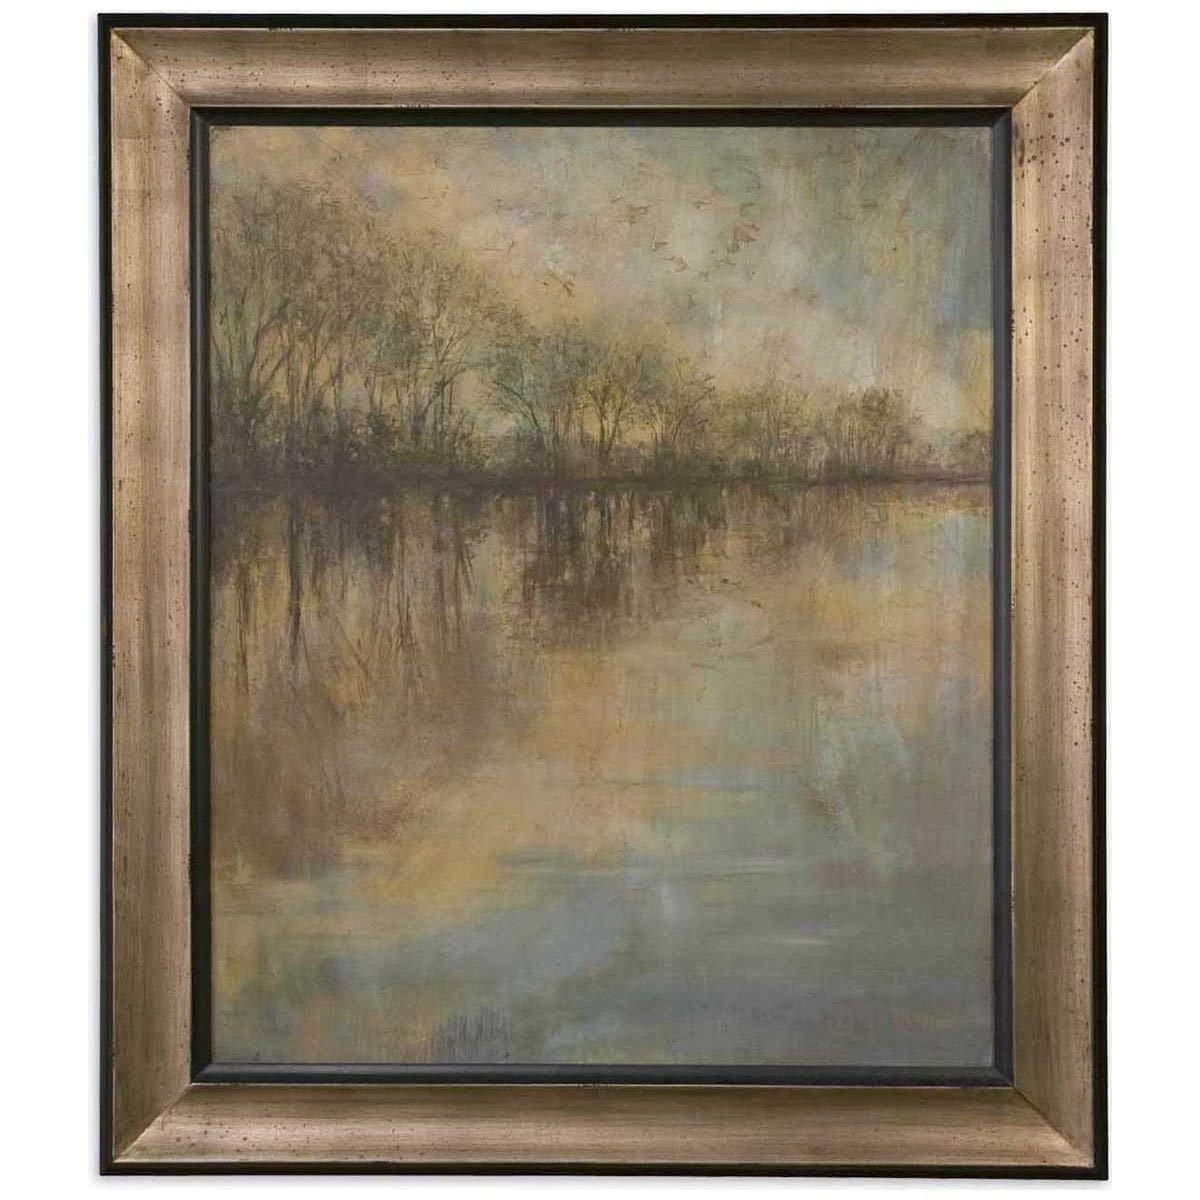 2017 Uttermost Wall Art With Regard To Amazon: Uttermost 41180 Winter Glow Framed Art: Prints: Posters (View 10 of 15)